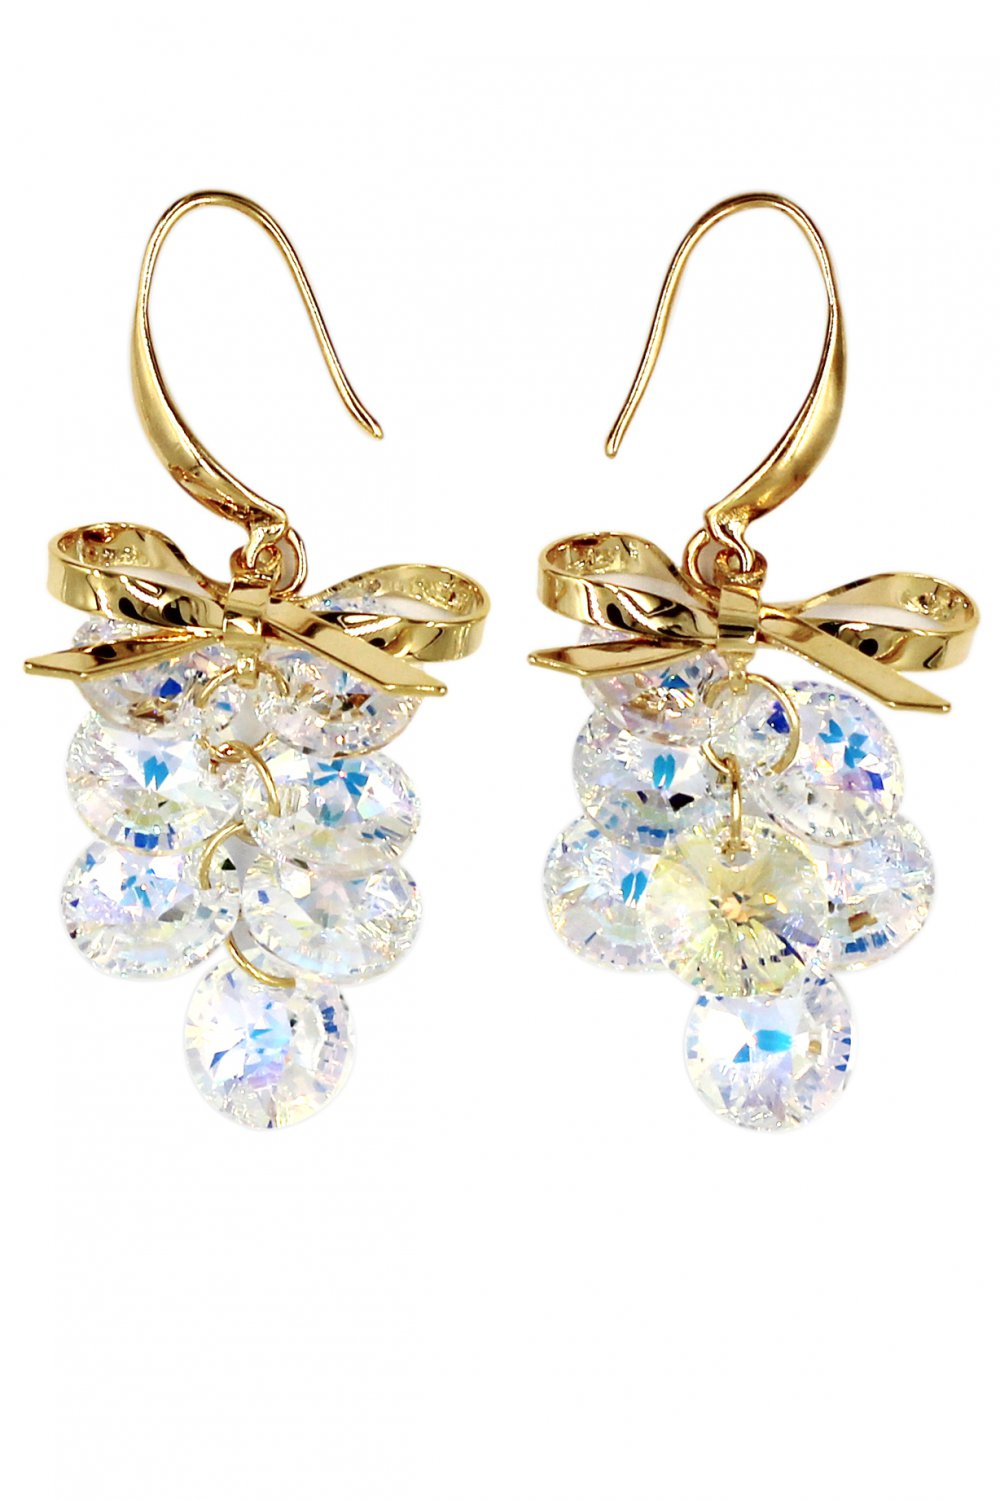 Fashion bowknot qualities crystal gold earrings